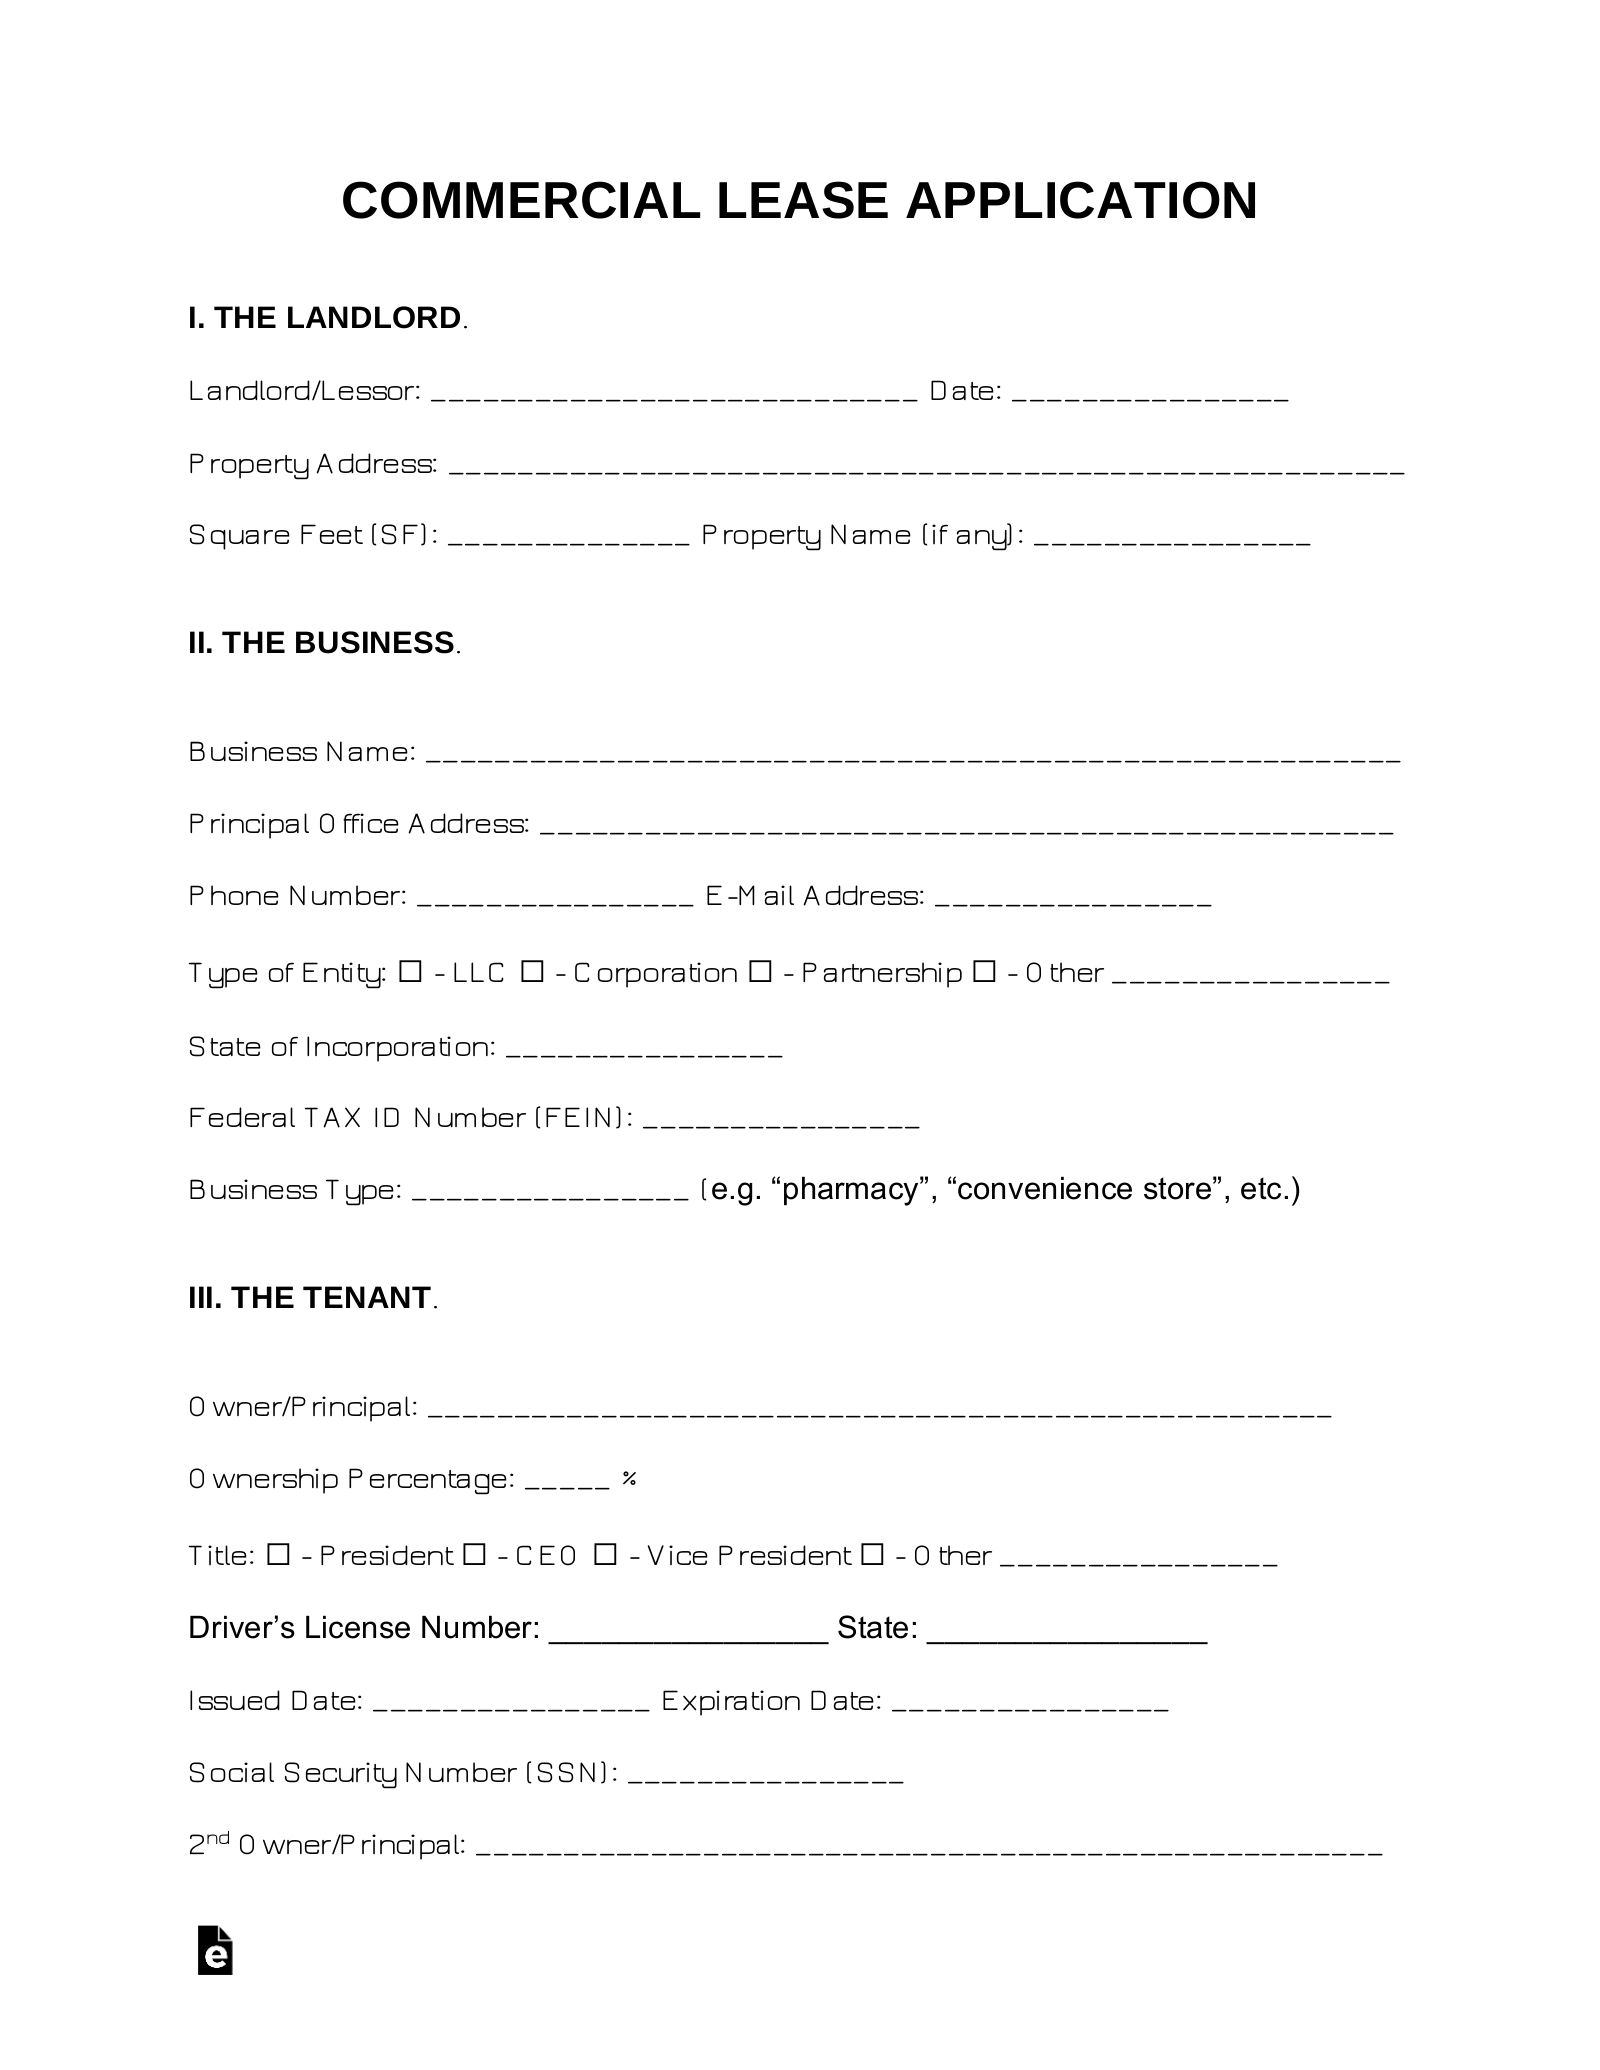 Free Commercial Lease Application Template For A Tenant